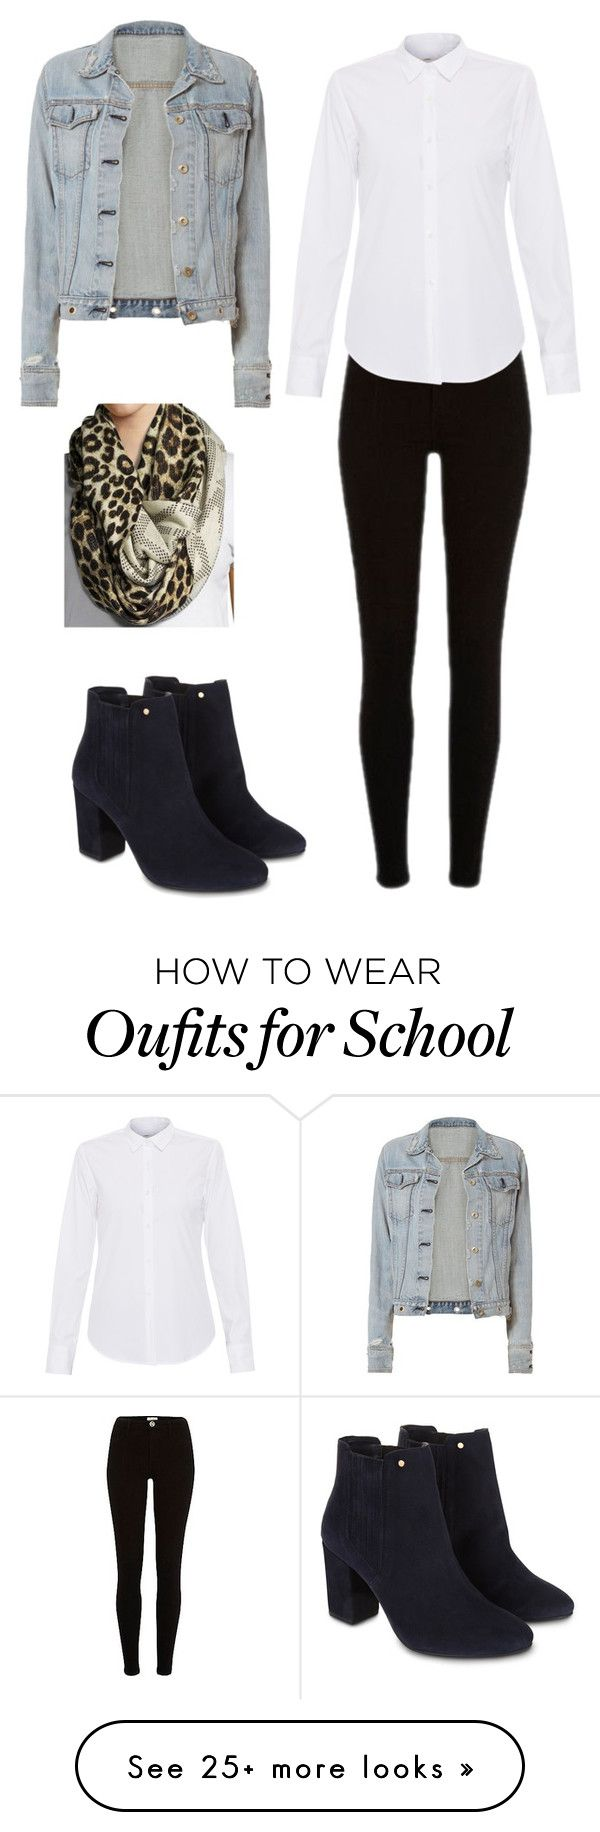 """""""School outfit"""" by adriacowell22 on Polyvore featuring rag & bone, Lareida, MICHAEL Michael Kors and Monsoon"""